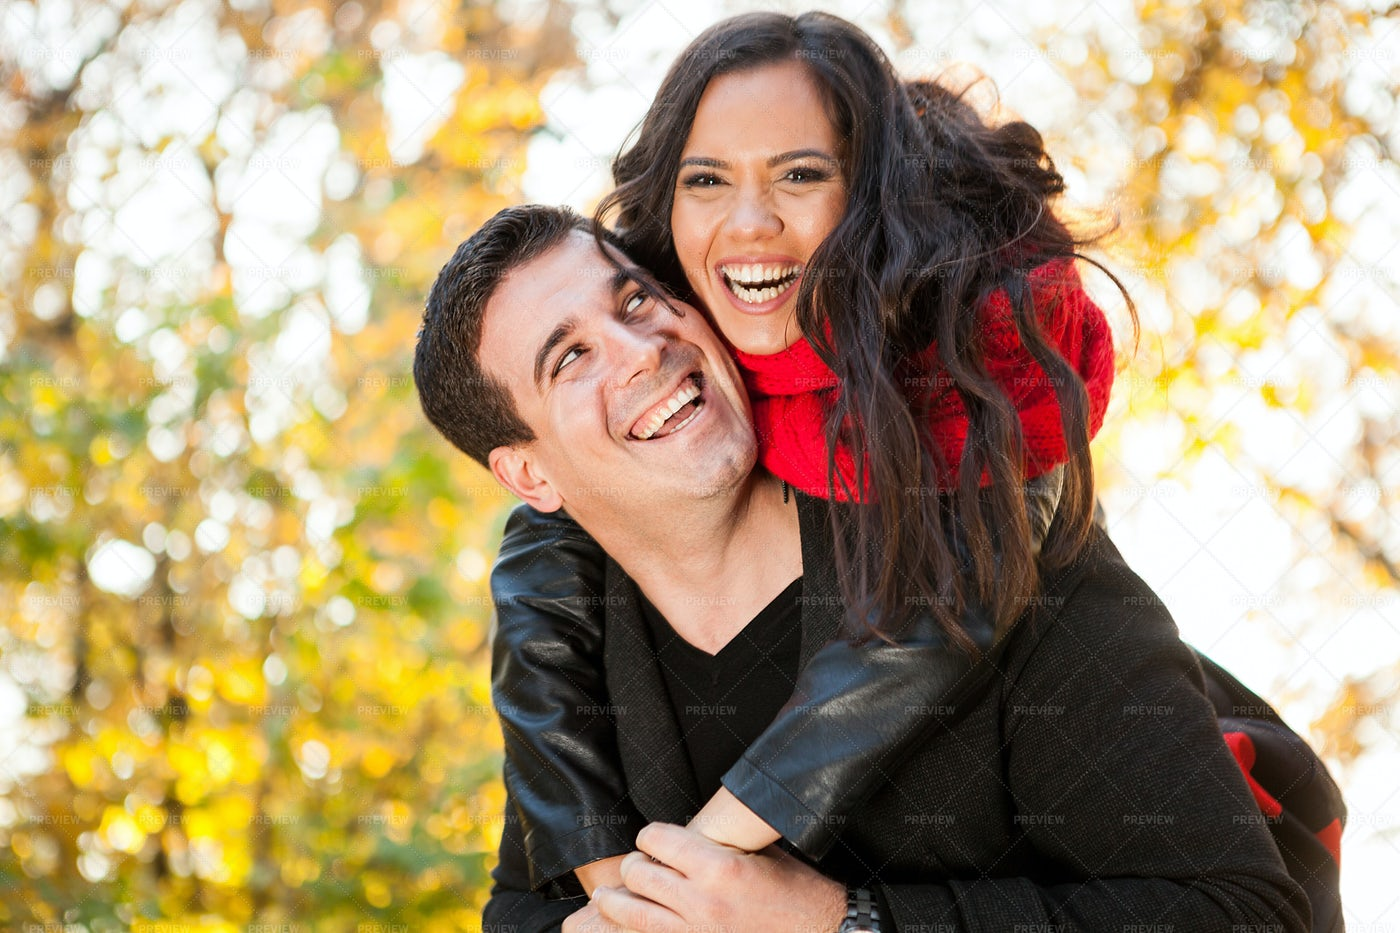 A Happy Couple In The Park: Stock Photos